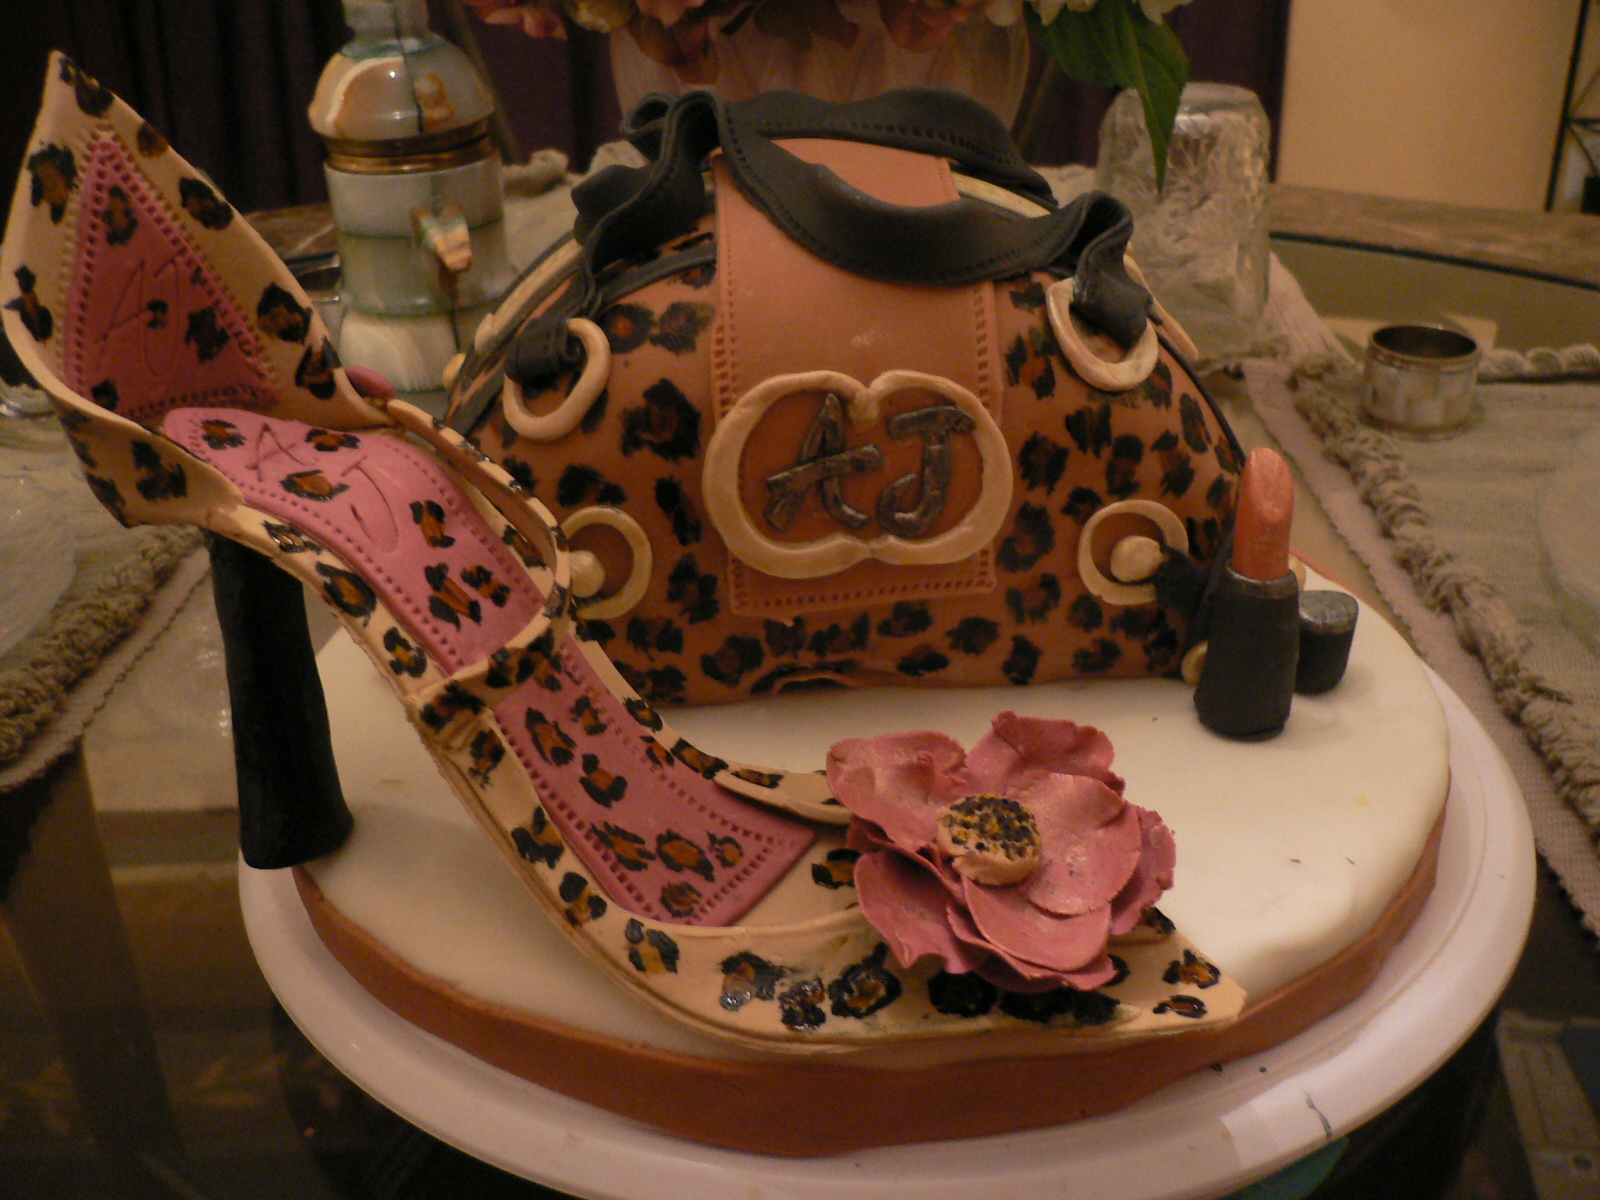 My 1st purse cake, gum paste shoe and lipstick. I LOVE Leopard print. Also, there is  leopard print  on top, the bottom & inside too! Took me 16 hrs to make, but I had fun and I learned through trial and error. My luster dust painting isn't up to par and it didn't come out as a deep gold (which I was looking for). Inside Leopard Print Tutorial: http://artesecakes.blogspot.com/2012/07/leopard-print-inside-cake-tutorial.html